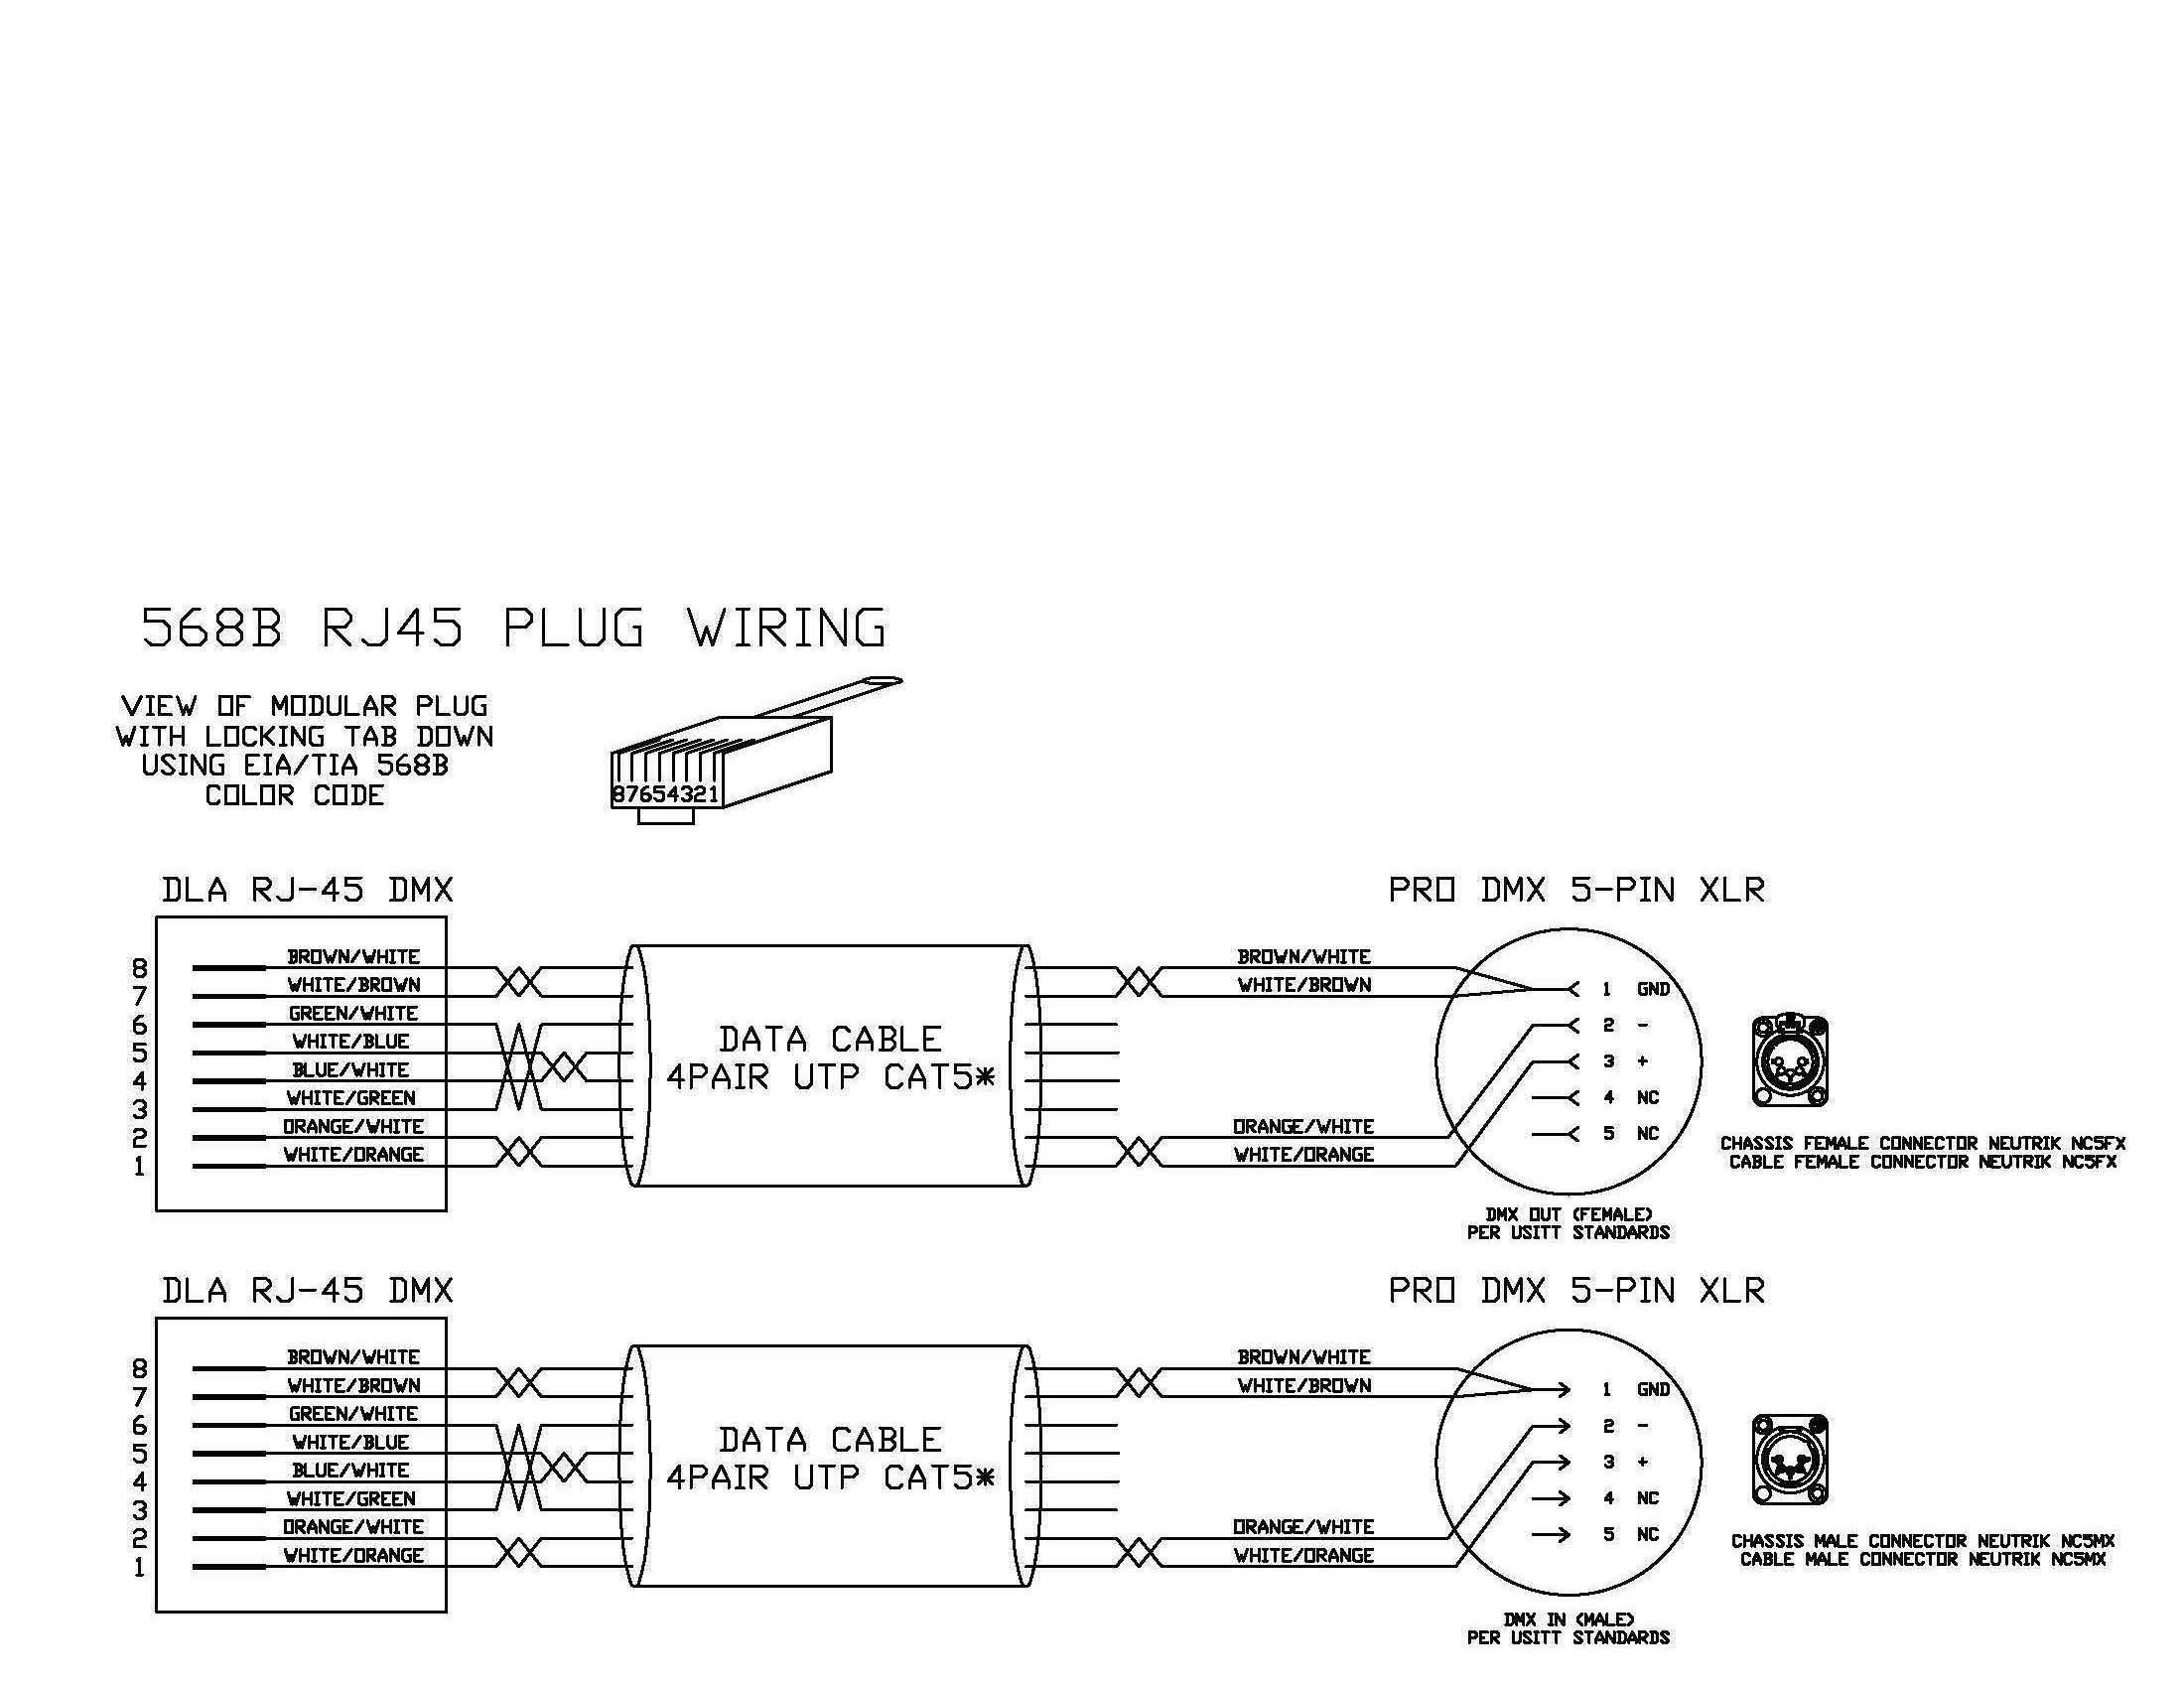 Xlr To Rj45 Wiring Diagram. Xlr. Electrical Wiring Diagrams ... Xlr To Wiring Diagram on lucerne wiring diagram, ml wiring diagram, power wiring diagram, flagstaff wiring diagram, raptor wiring diagram, trs cable wiring diagram, vibe wiring diagram, model wiring diagram, 3-pin mic wiring diagram, cyclone wiring diagram, xts wiring diagram, dmx led controller wiring diagram, work and play wiring diagram, wildcat wiring diagram, regal wiring diagram, cts v wiring diagram, challenger wiring diagram, yukon wiring diagram, g6 wiring diagram, speaker wiring diagram,